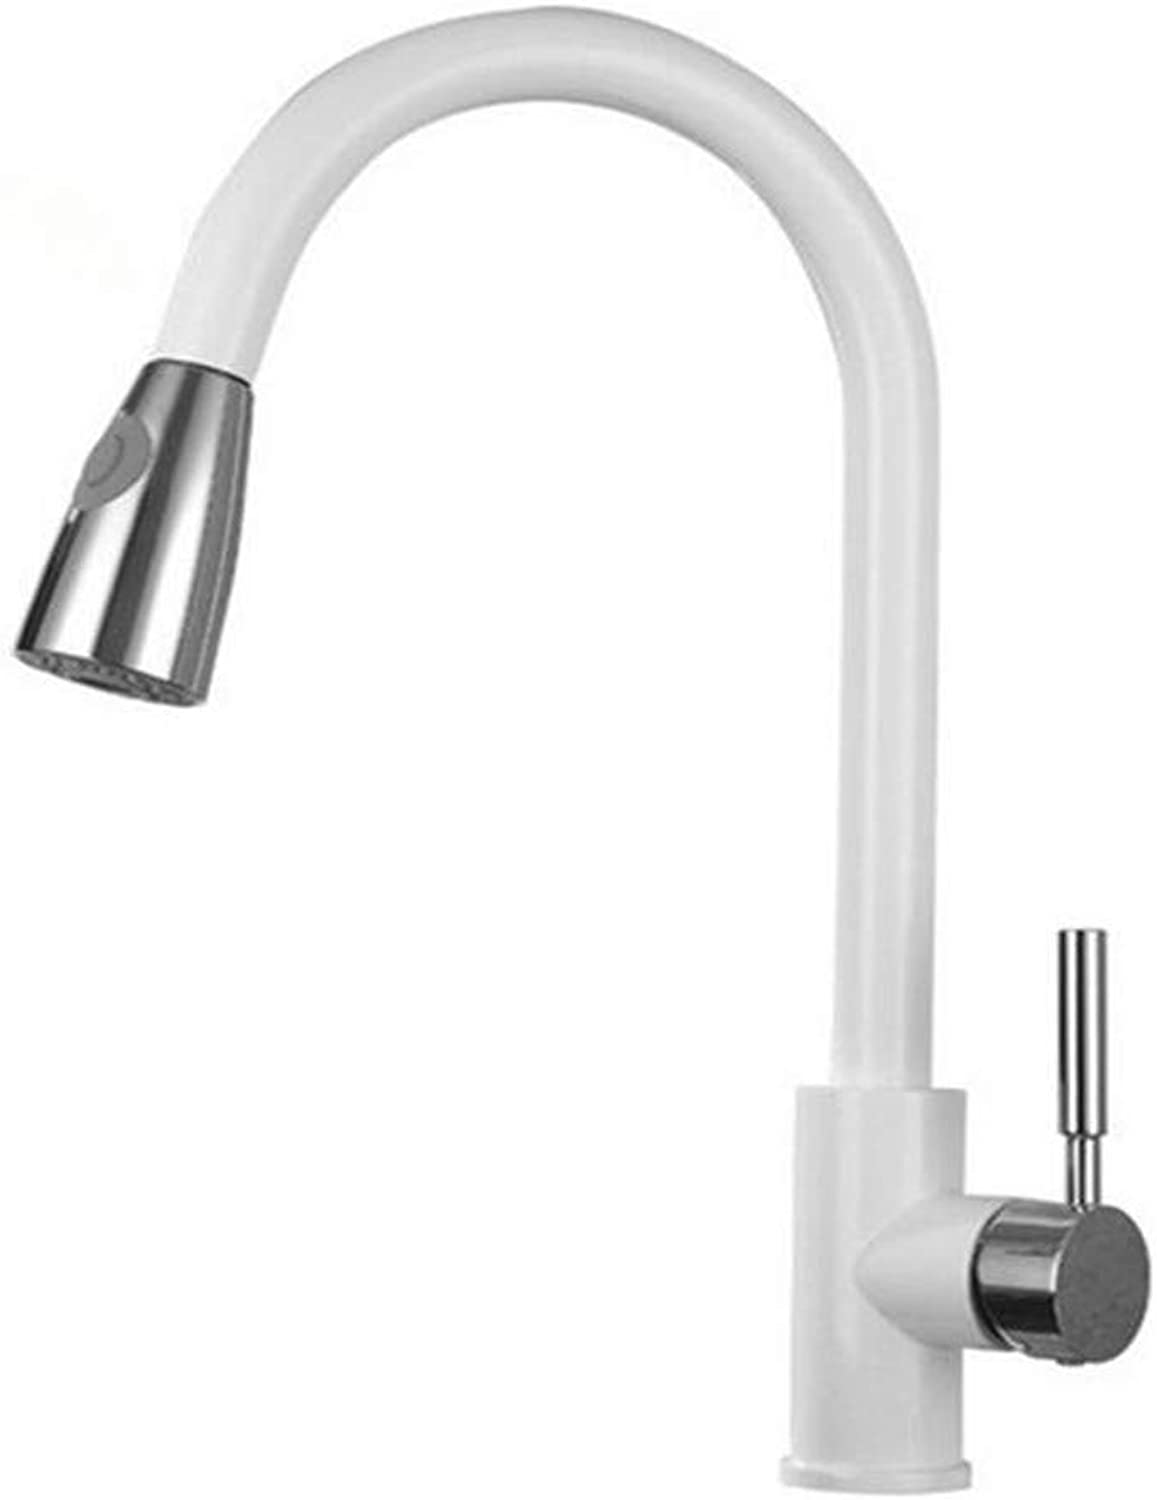 Faucet Washbasin Mixerwhite Finished Brass Kitchen Basin Faucet Pull Out Spring Spout Mixer Tap Single Handle Hot Cold Swivel Tap